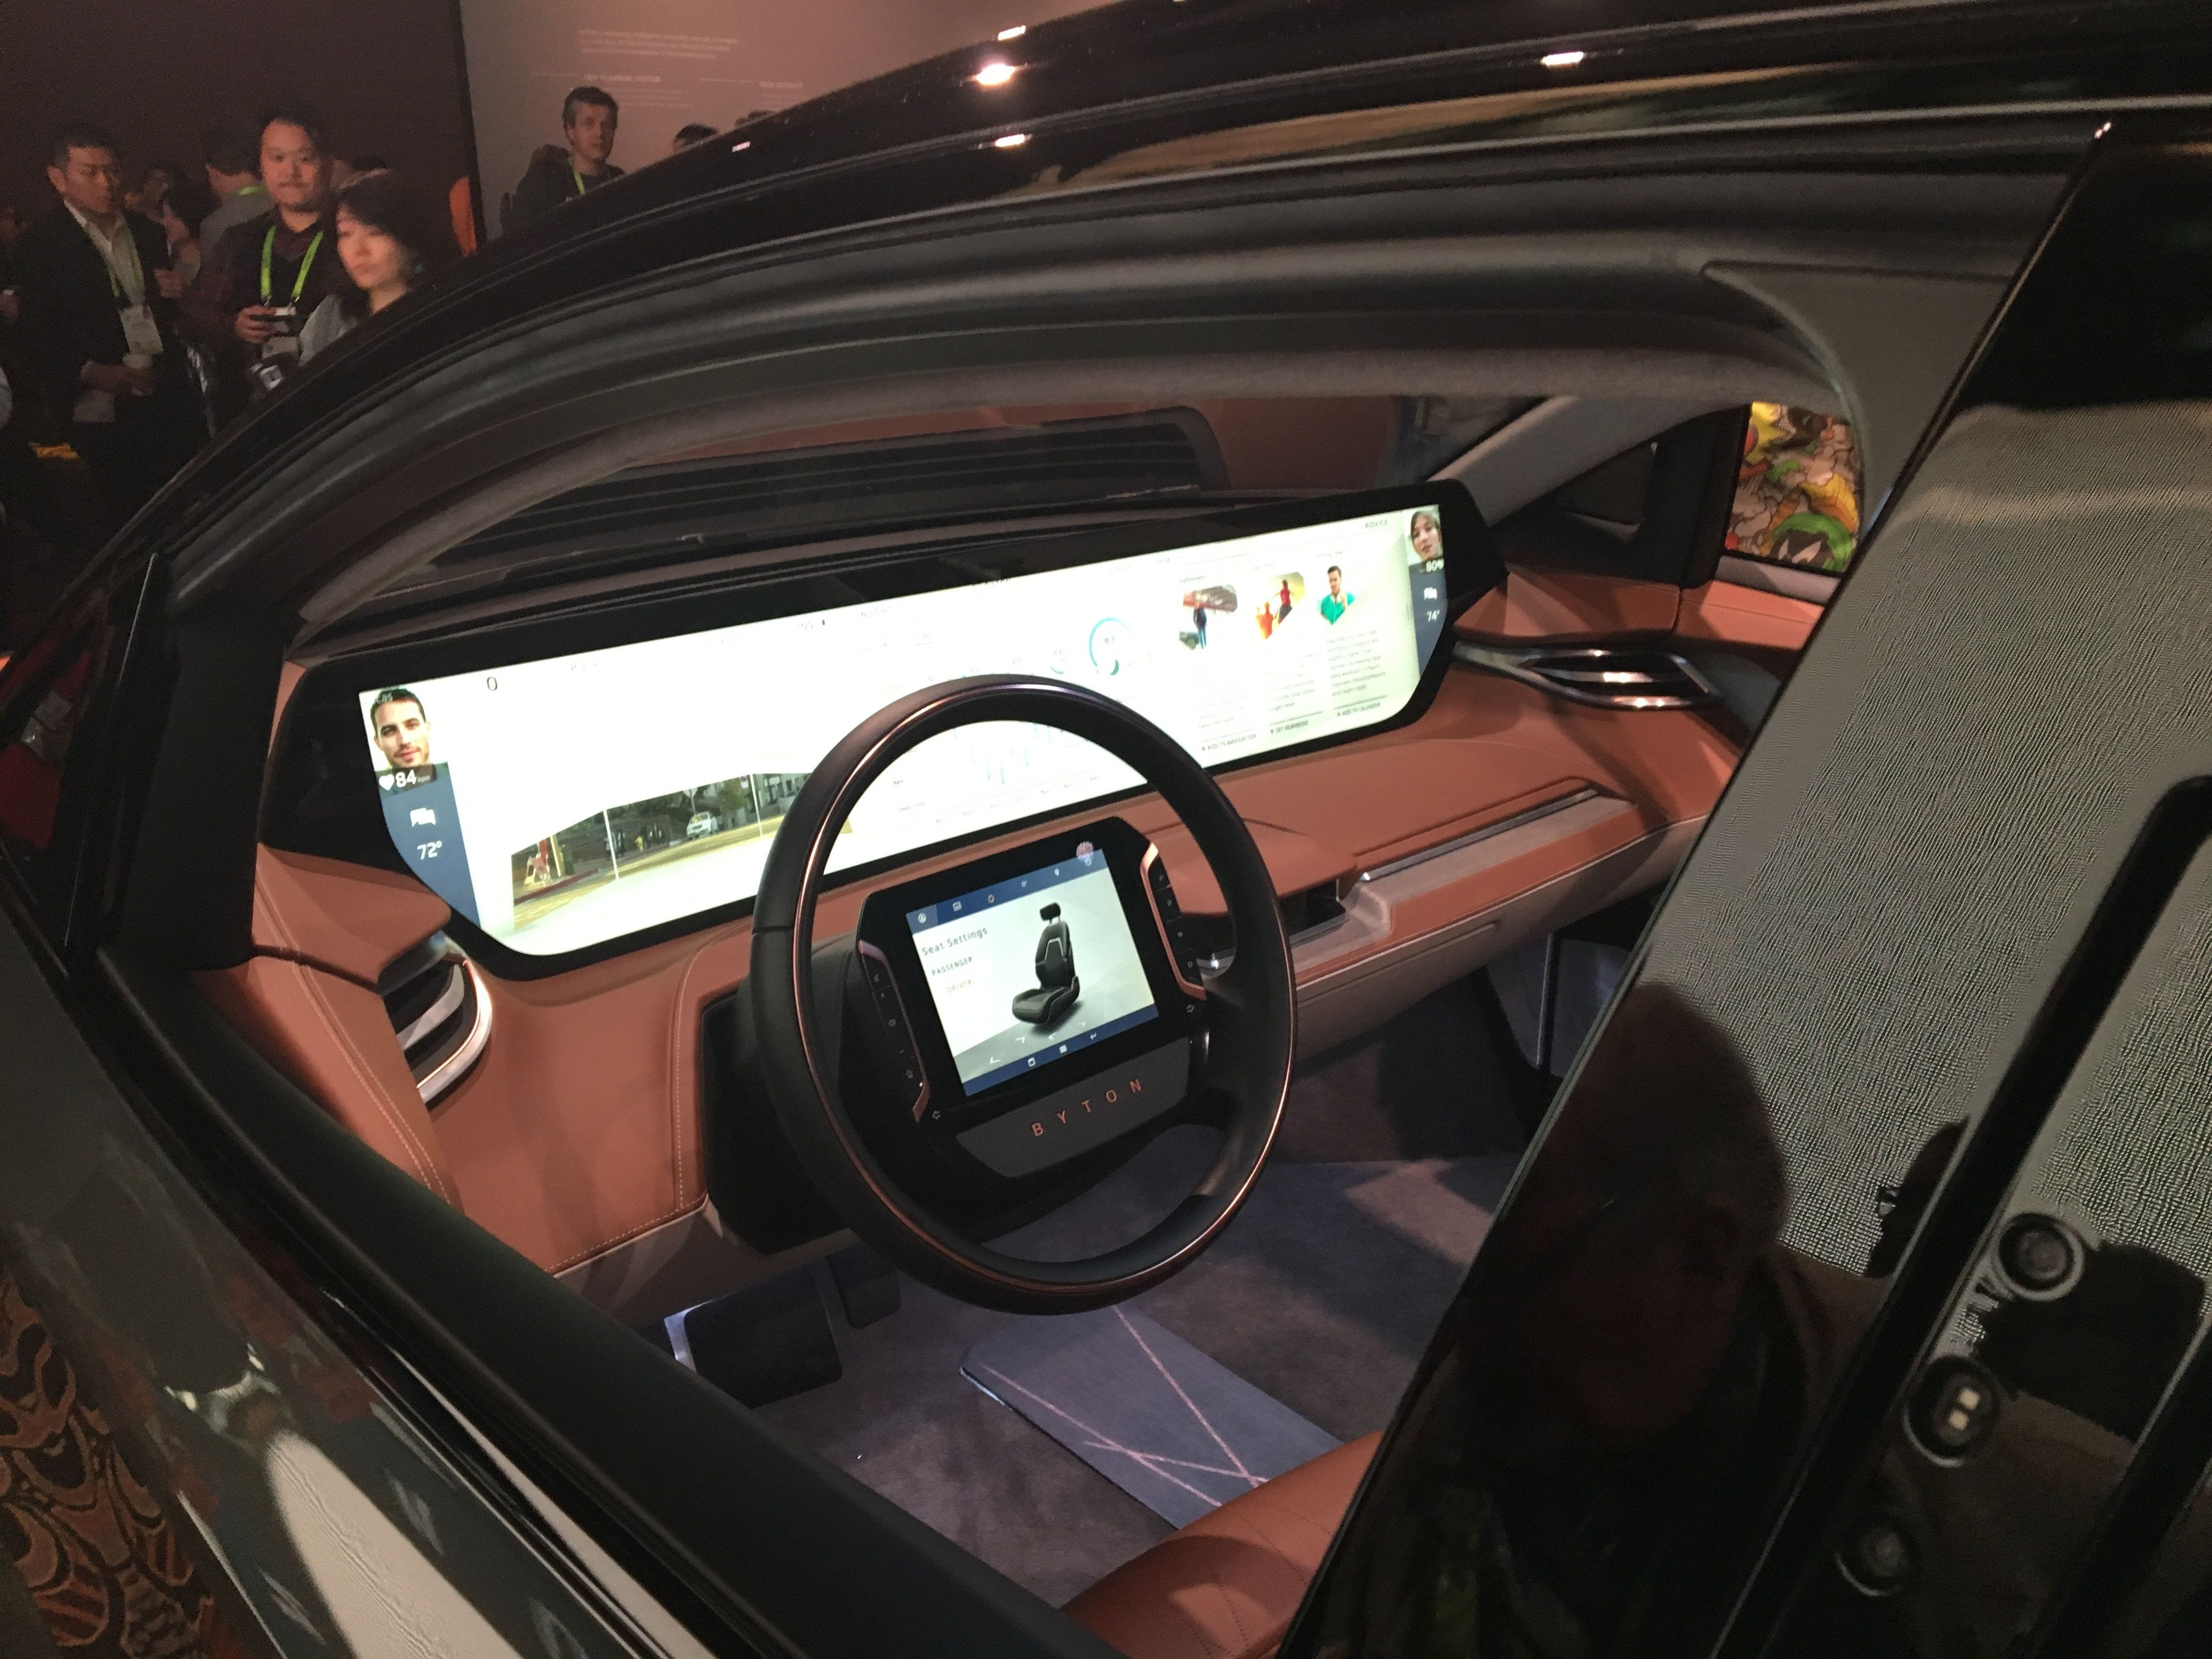 An electronic vehicle produced by China based automotive startup Byton features a 48 inch display and is set to go on sale later this year.